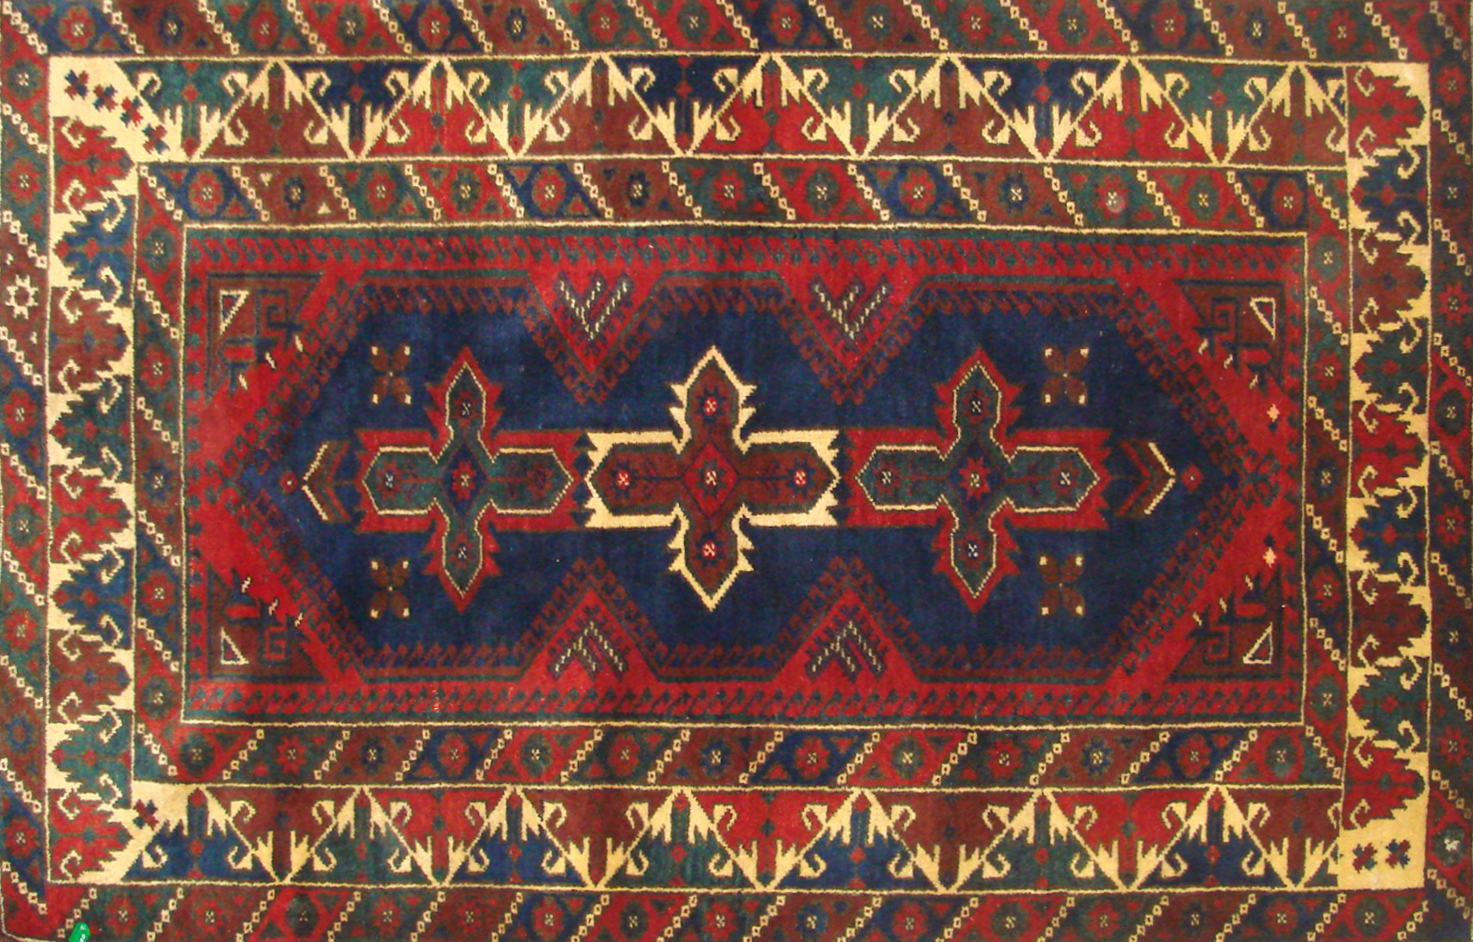 4x6 Oushak Hand Knotted Wool Area Rug - MR021359